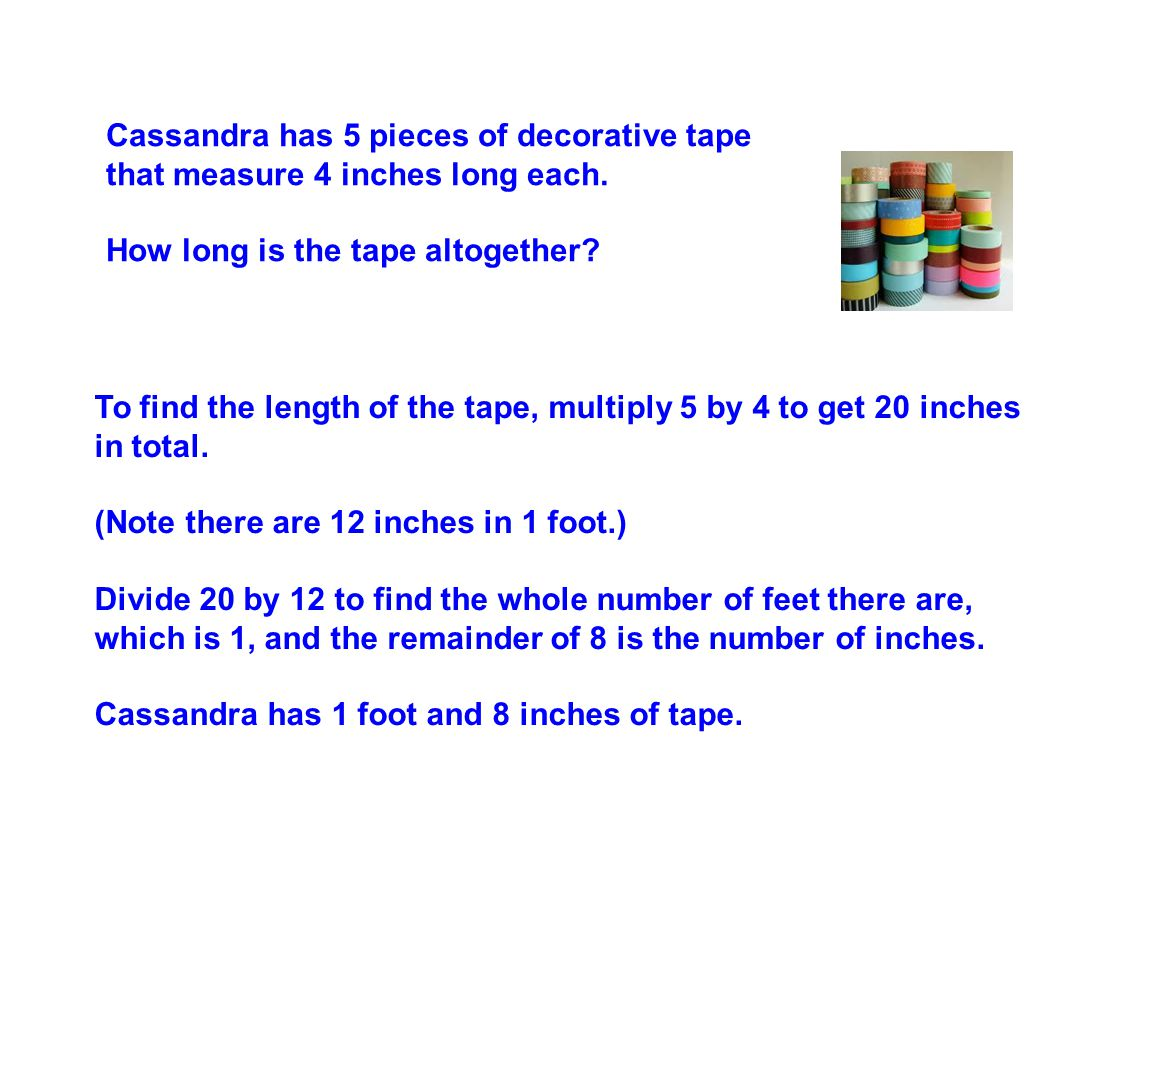 Cassandra has 5 pieces of decorative tape that measure 4 inches long each.